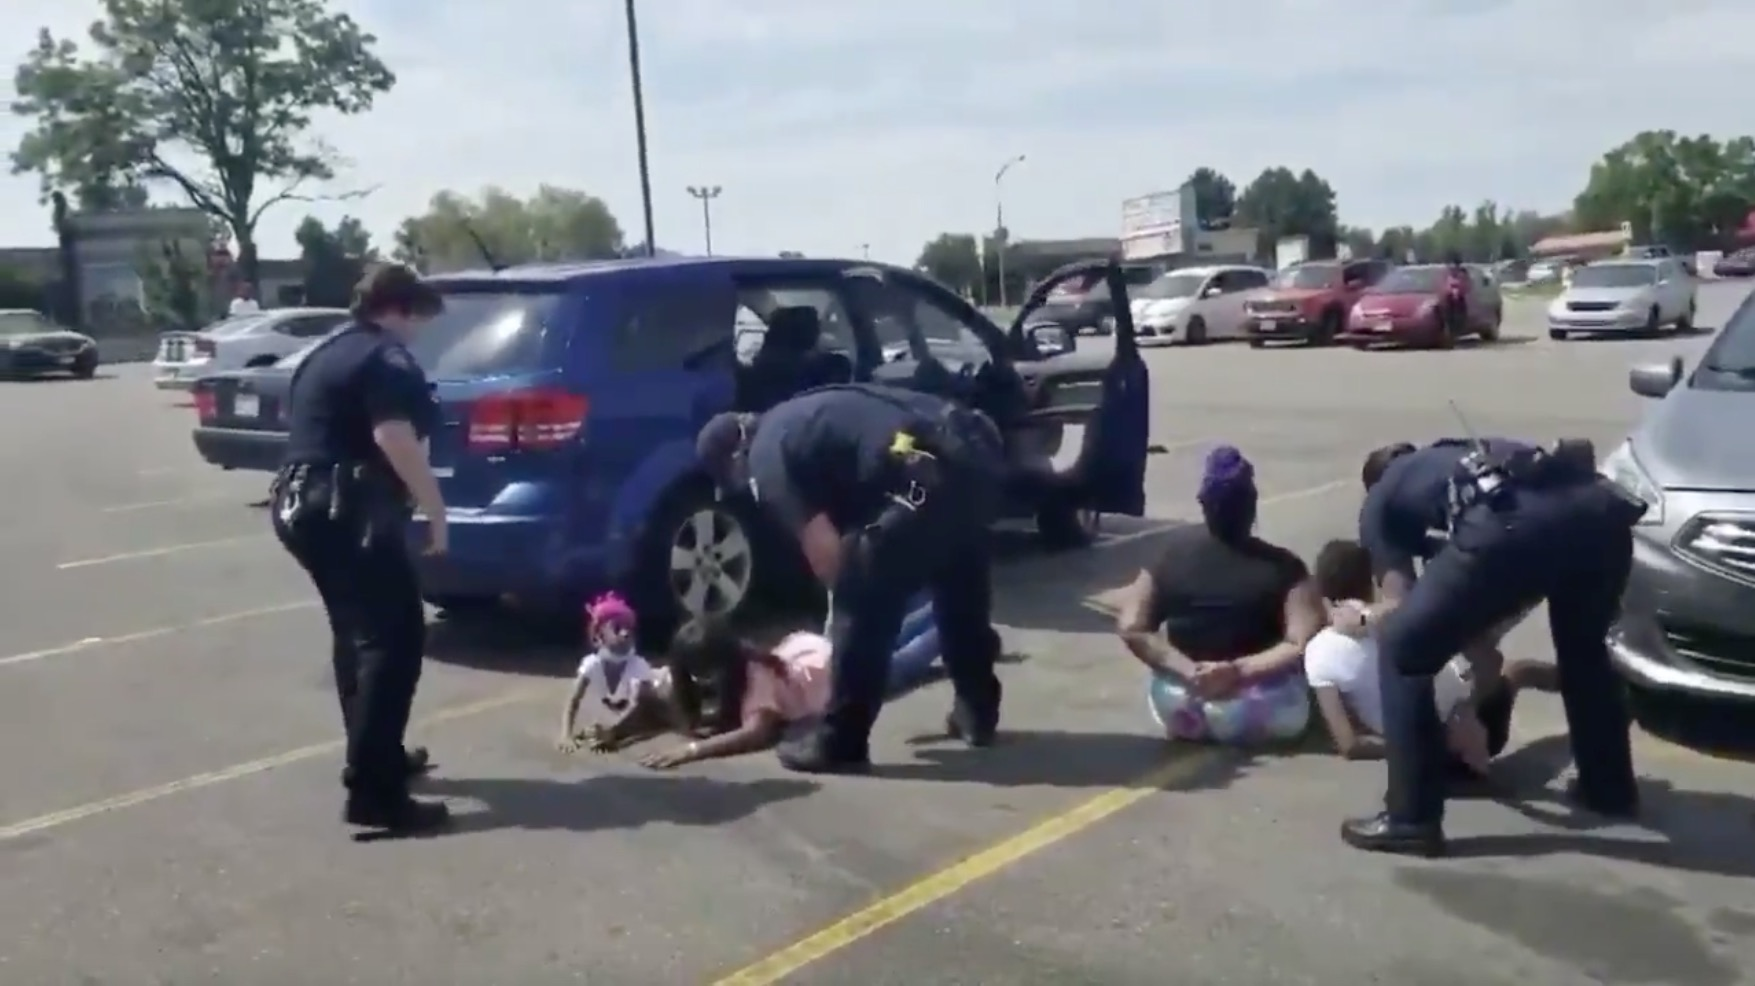 Black Family Detained And Handcuffed By Police At Gunpoint